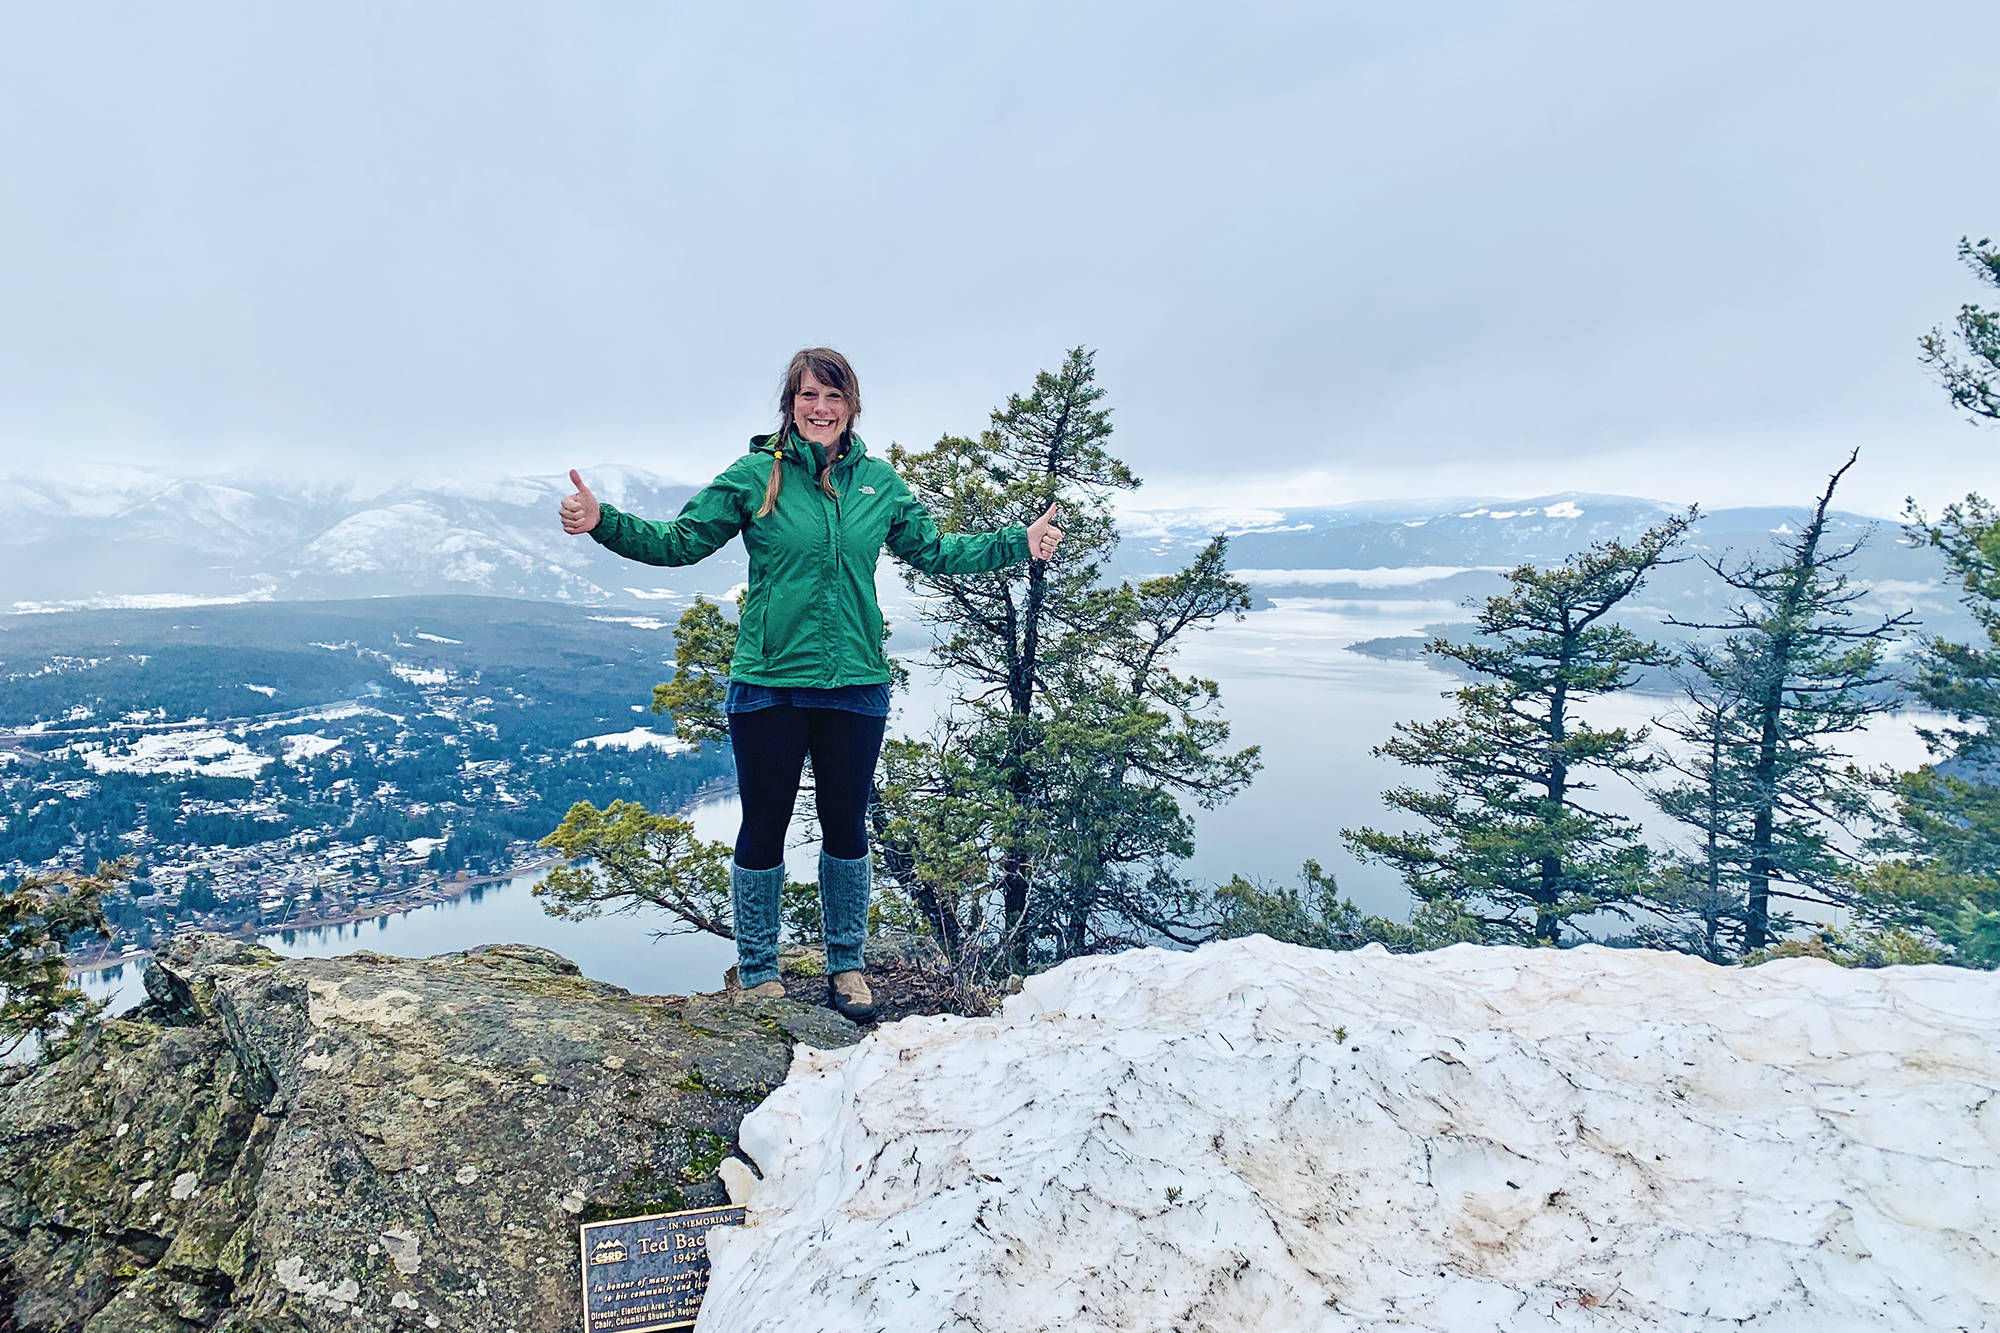 Shuswap Adventure Girl Sarah Tokarek has a particular passion for hiking trails around Blind Bay and the South Shuswap. (Contributed)